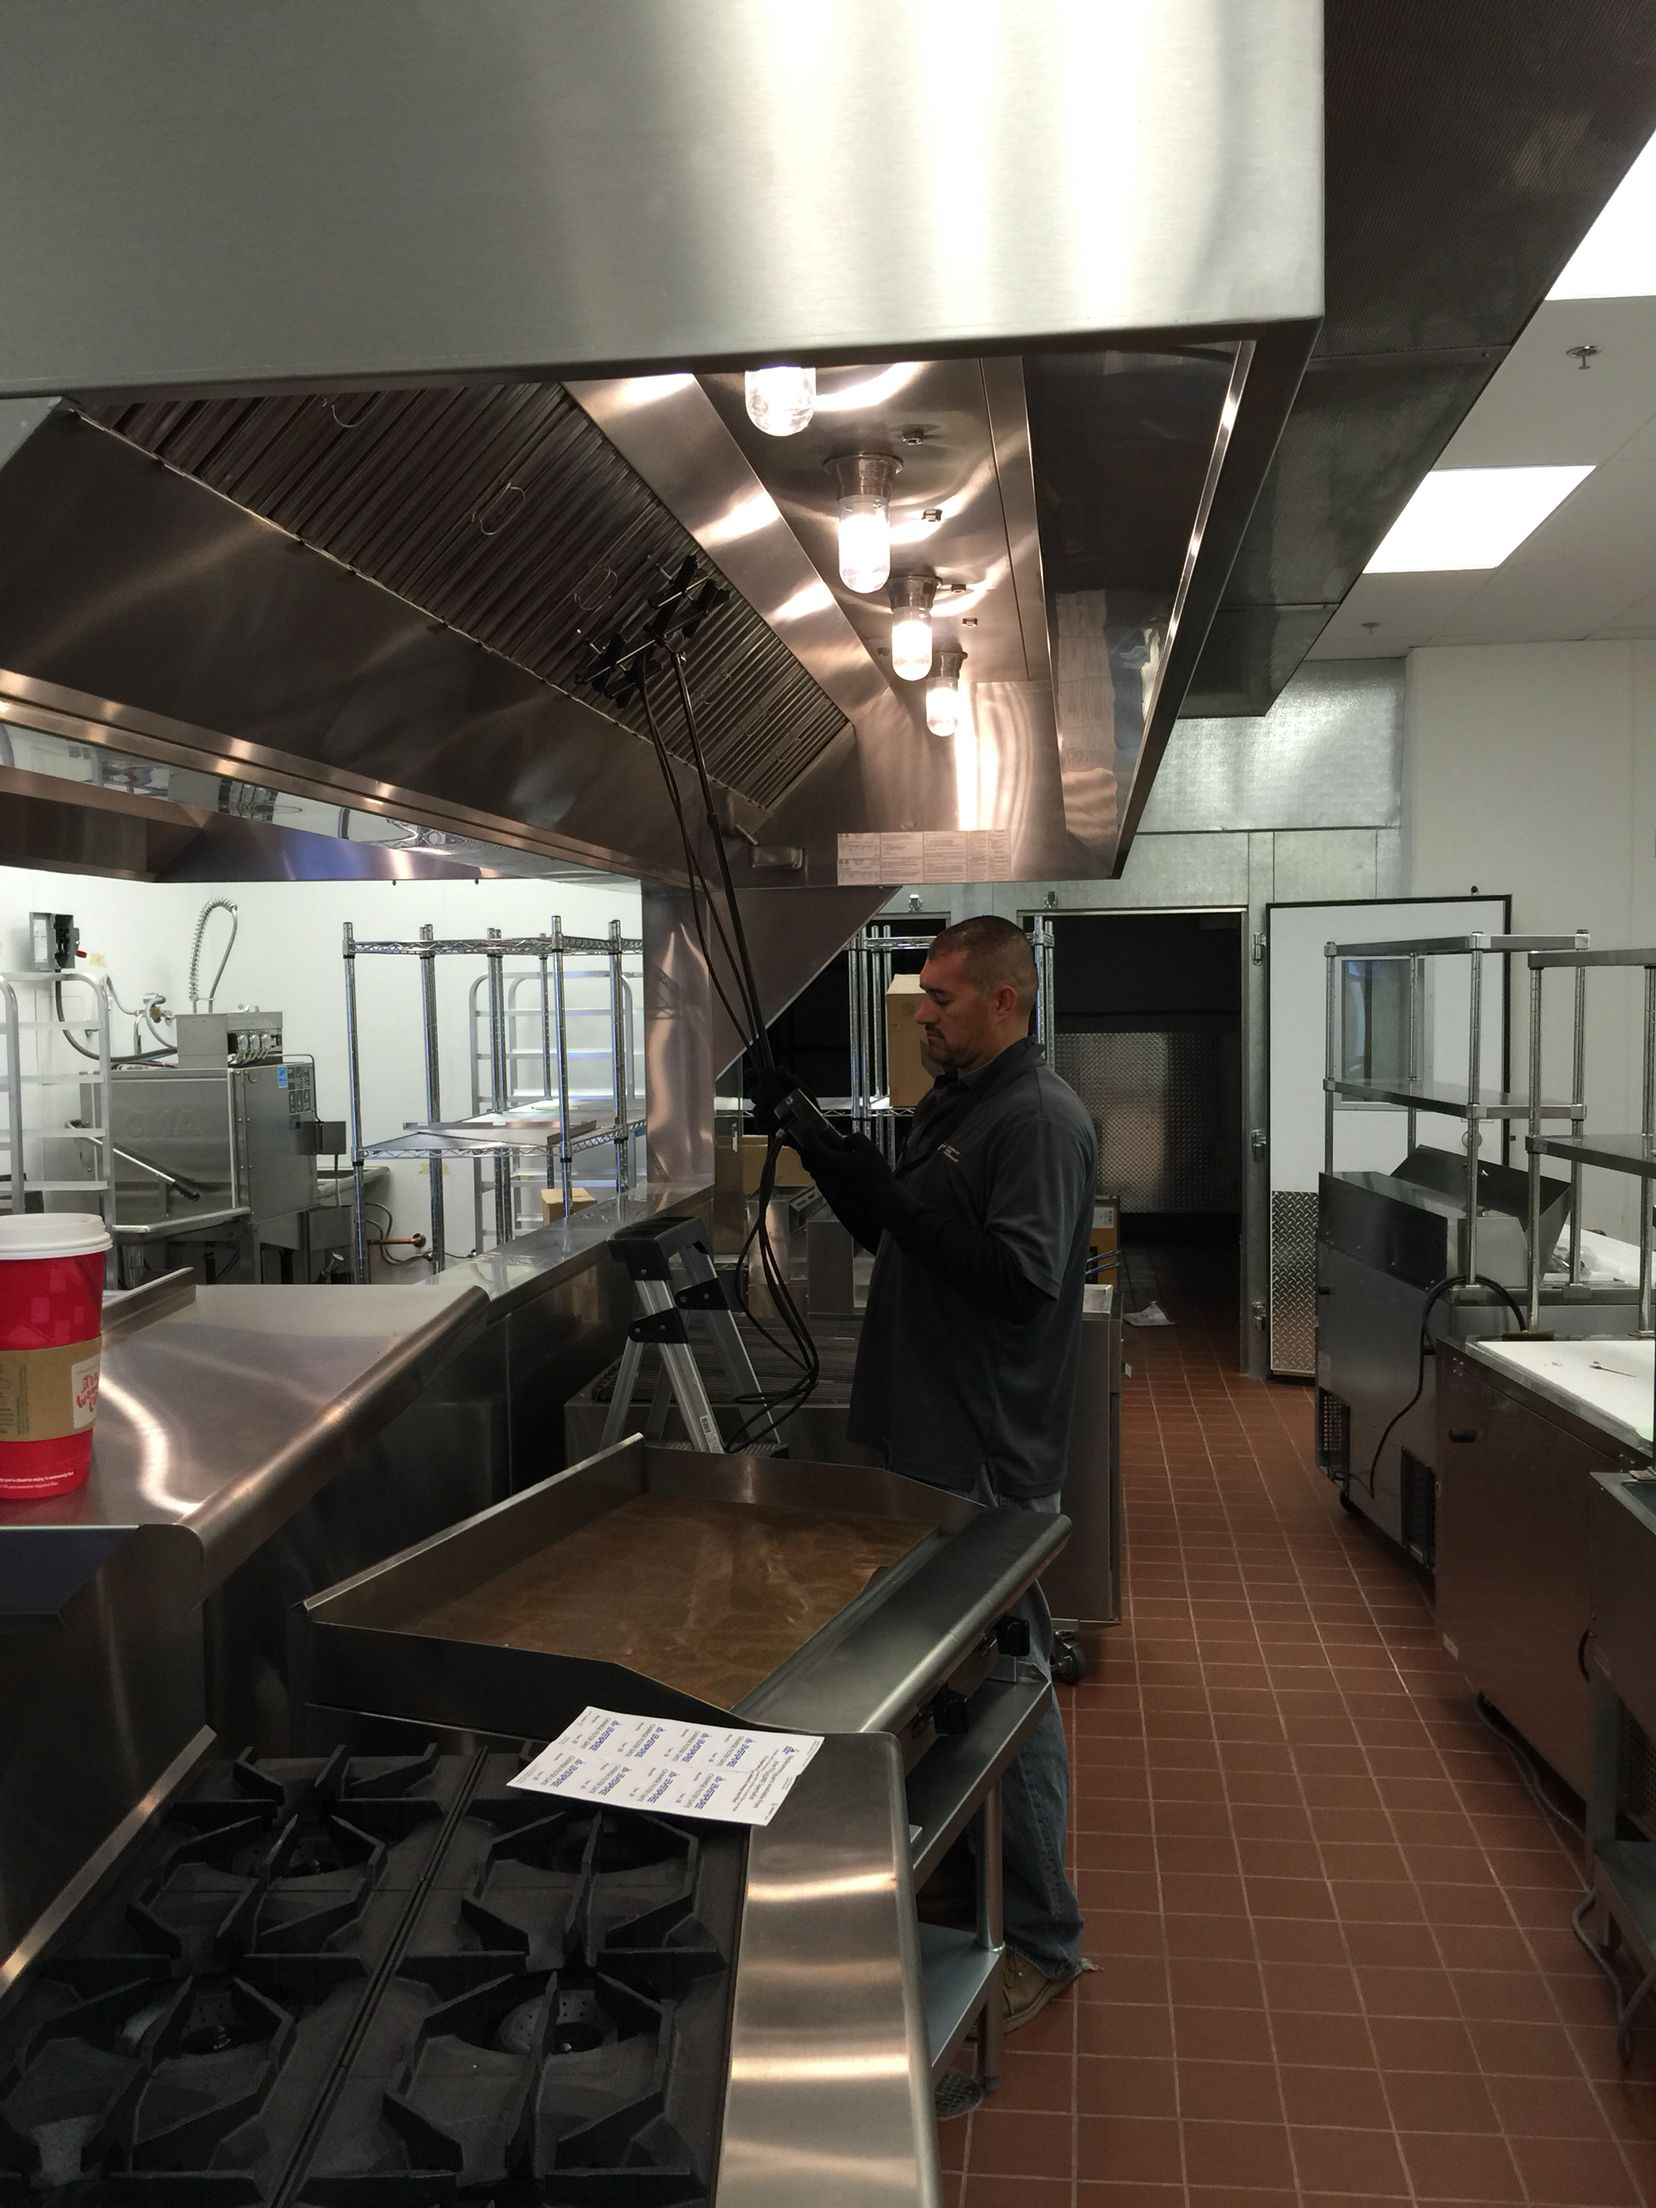 Testing & Balancing a Kitchen Exhaust Hood in order to